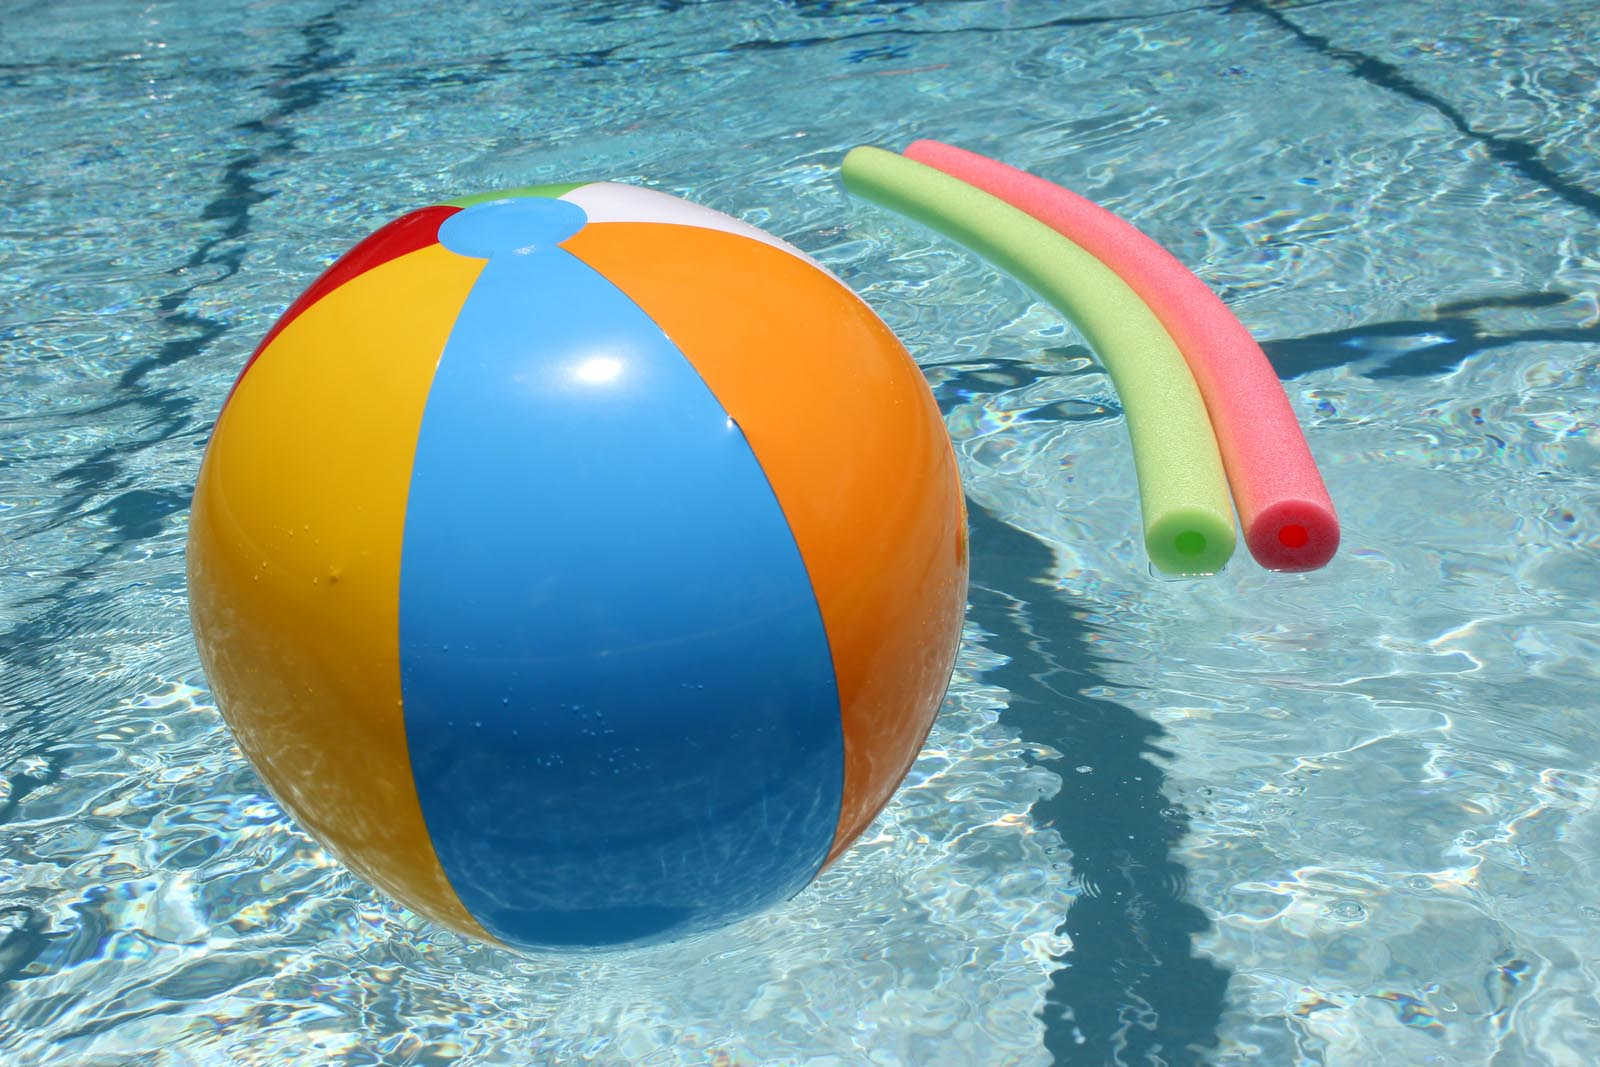 Kids Pool Party Ideas 8 pool party favors kids will love fun pool birthday party favor ideas for children Kids Pool Party Images